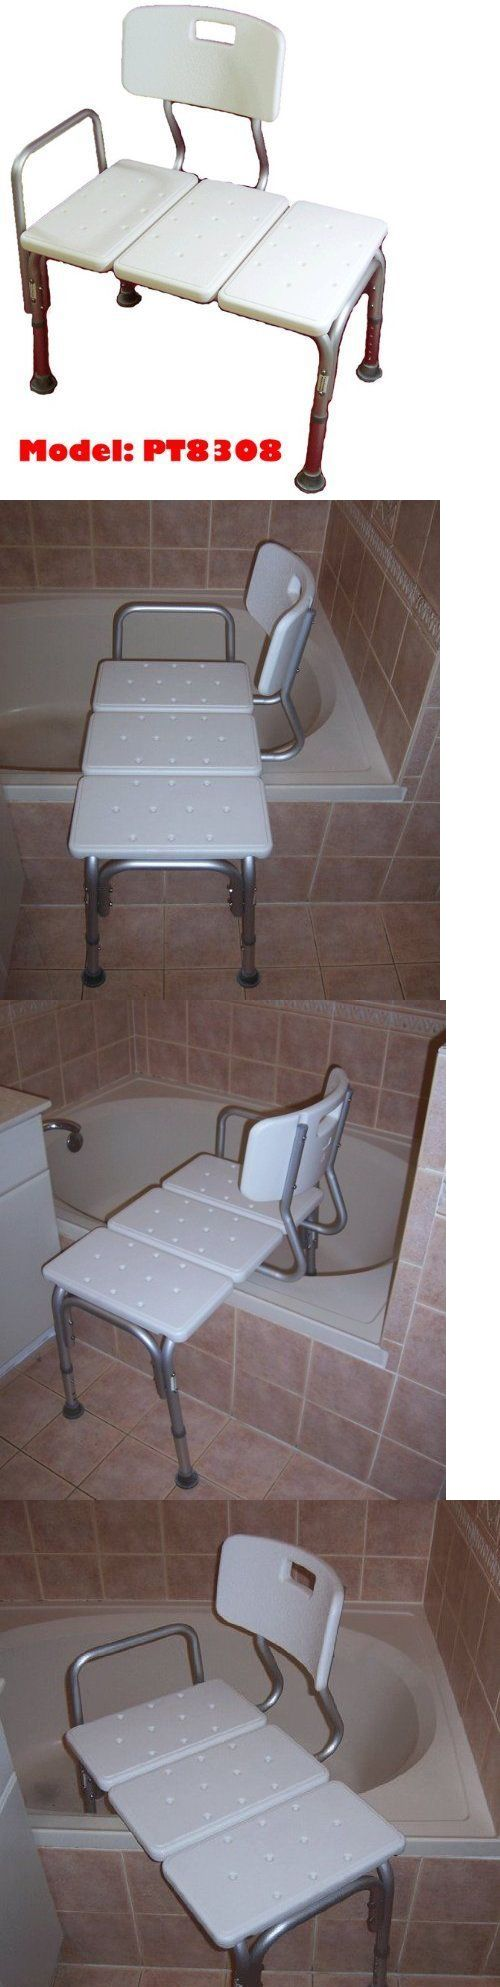 Shower and Bath Seats: Shower Chairs For Elderly Medical Disabled Handicapped Bath Bathtub Seat Bench -> BUY IT NOW ONLY: $74.62 on eBay!